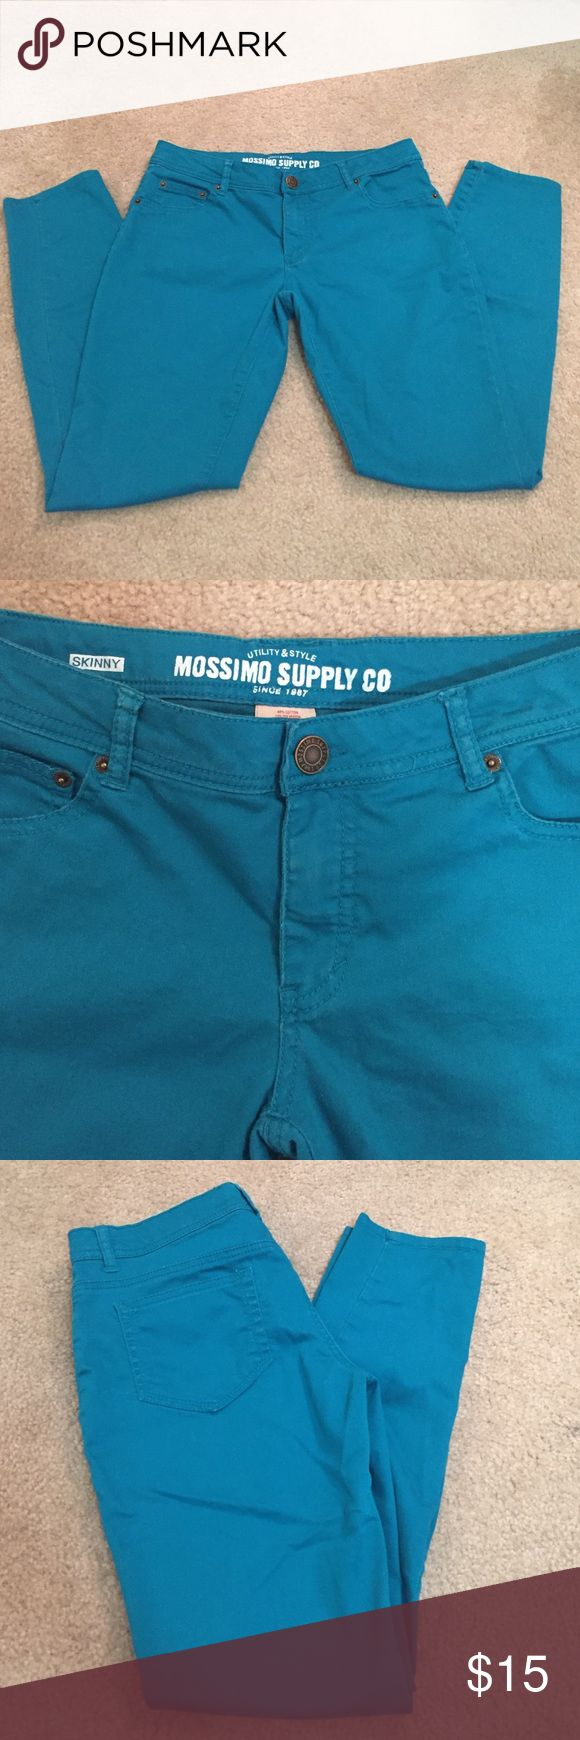 Teal skinny pants! Light weight. Stretchy material. Skinny. Mossimo Supply Co Pants Skinny